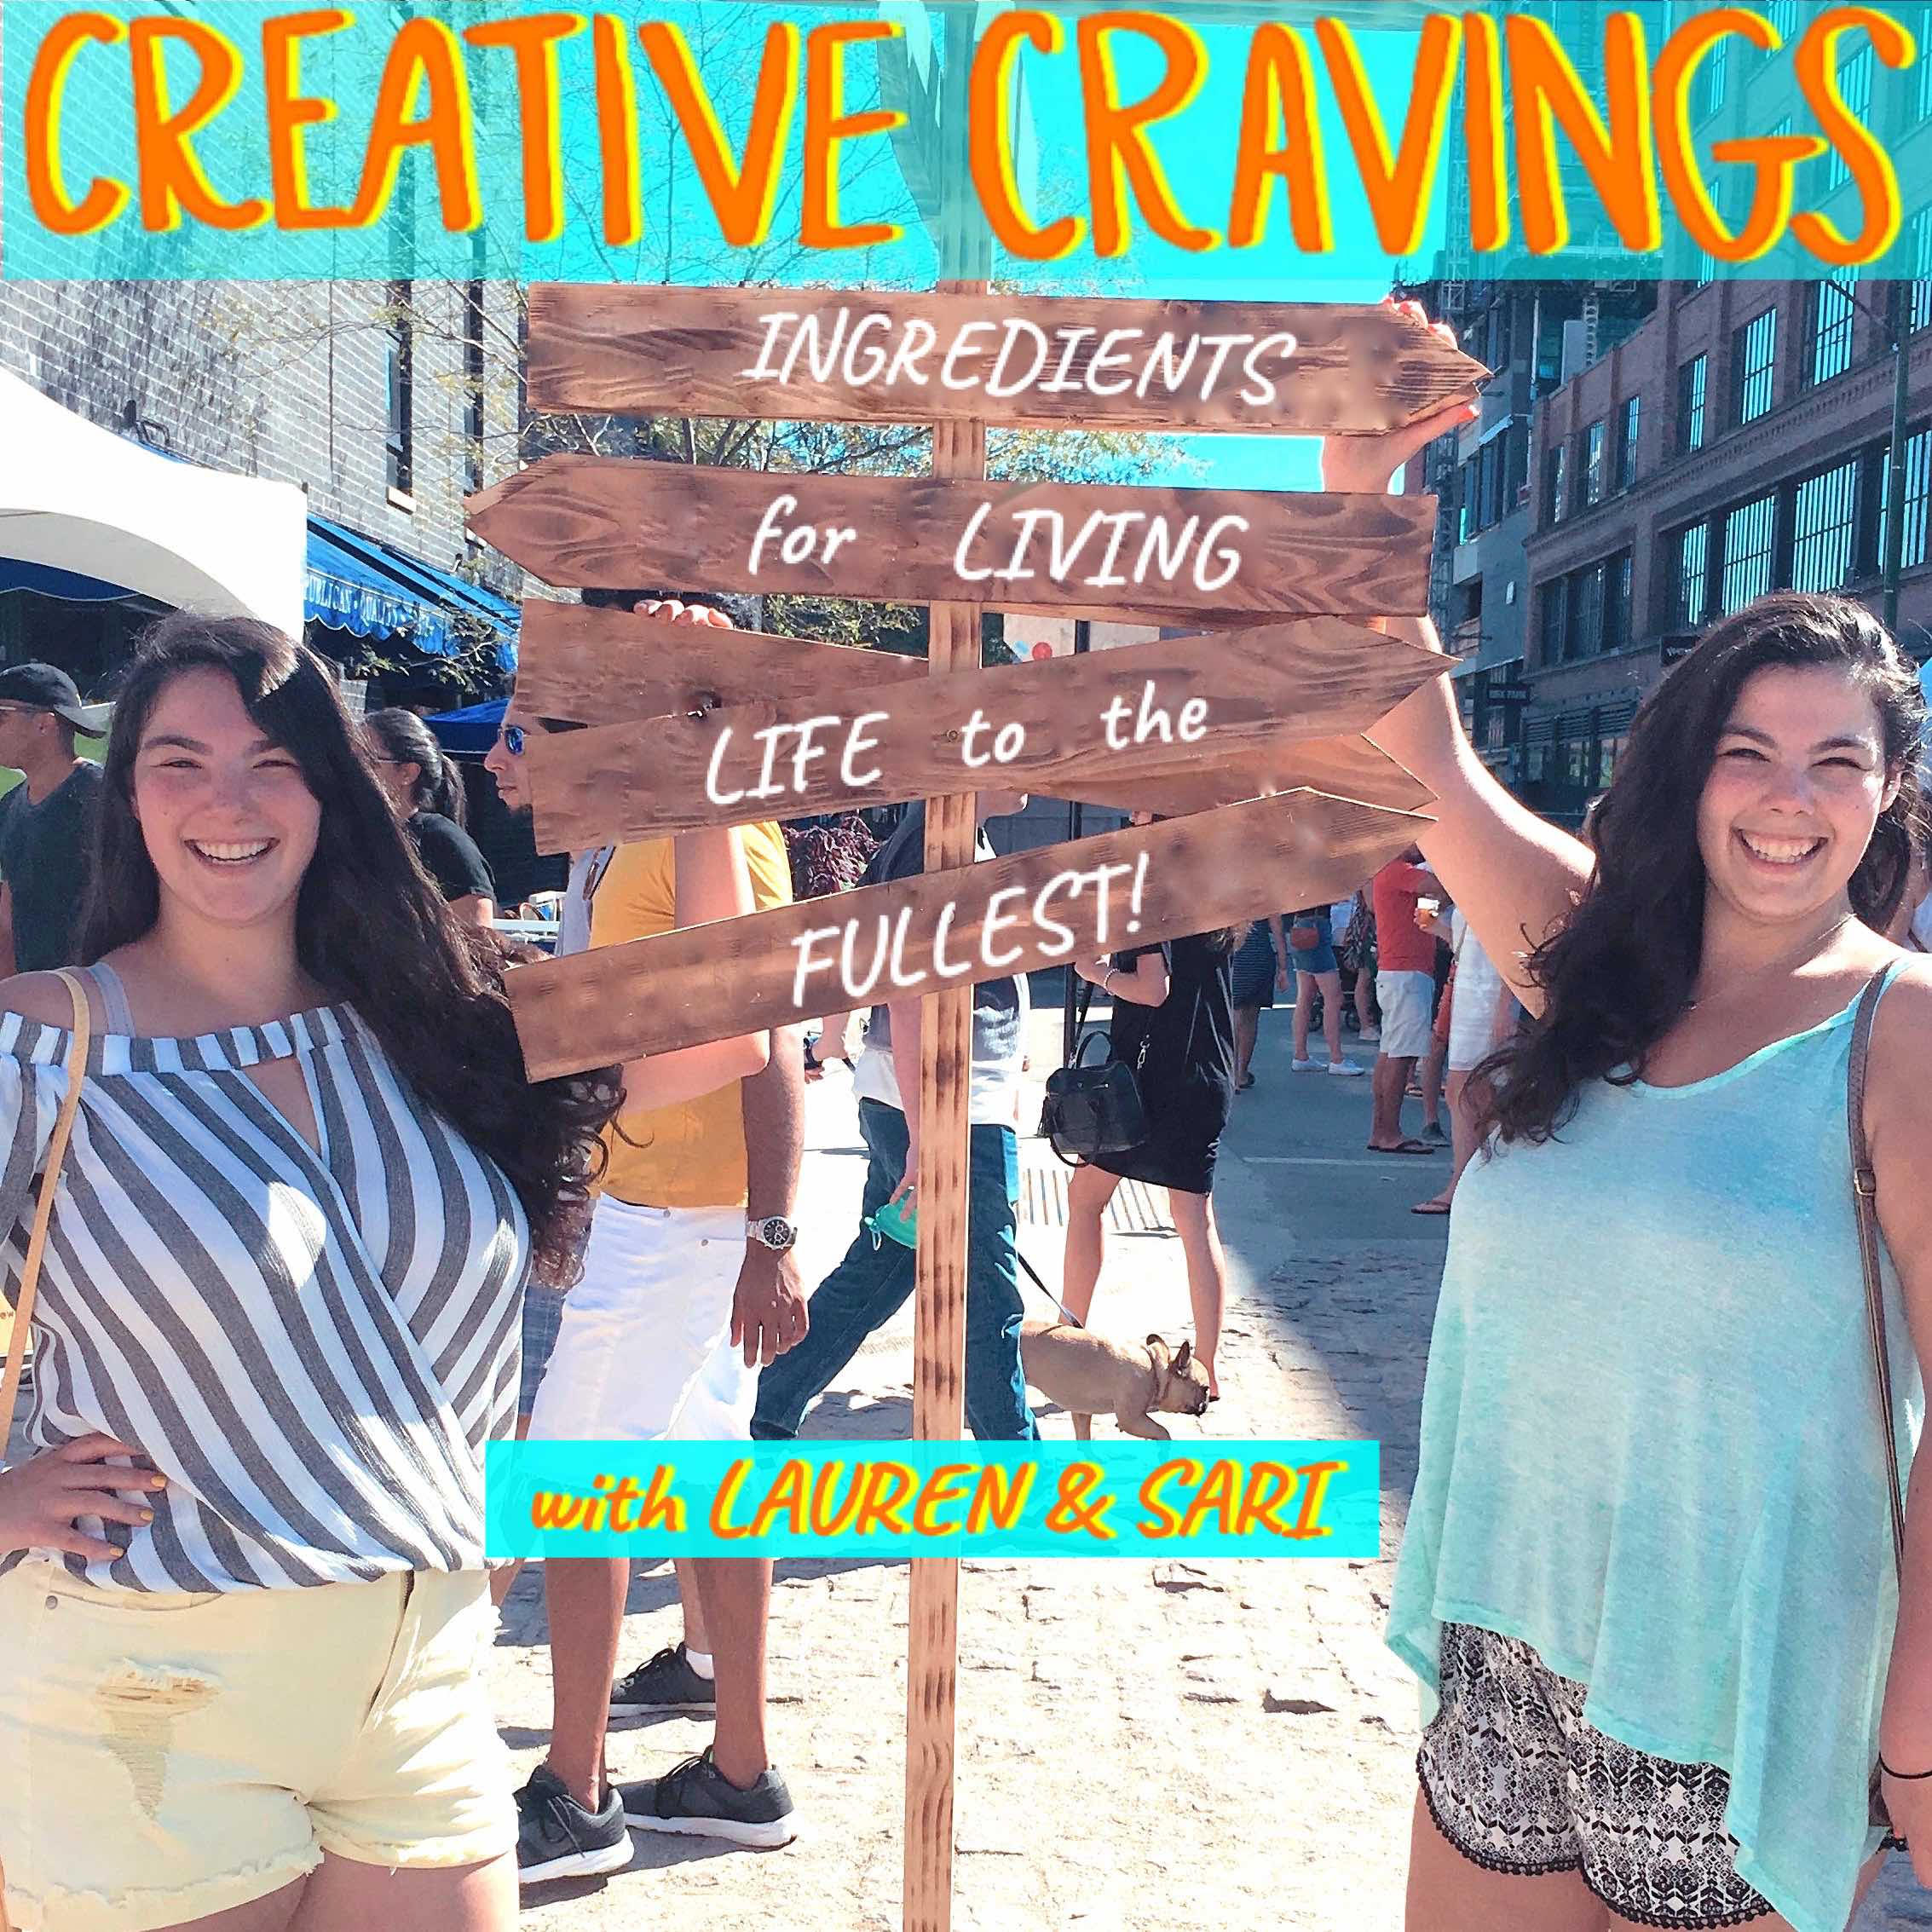 Ep 6: Craving Mole Sauce, Chicken Soup, and Creating This Podcast   with Sari Feingold and Lauren Feingold, @creative.cravings   4.1.19